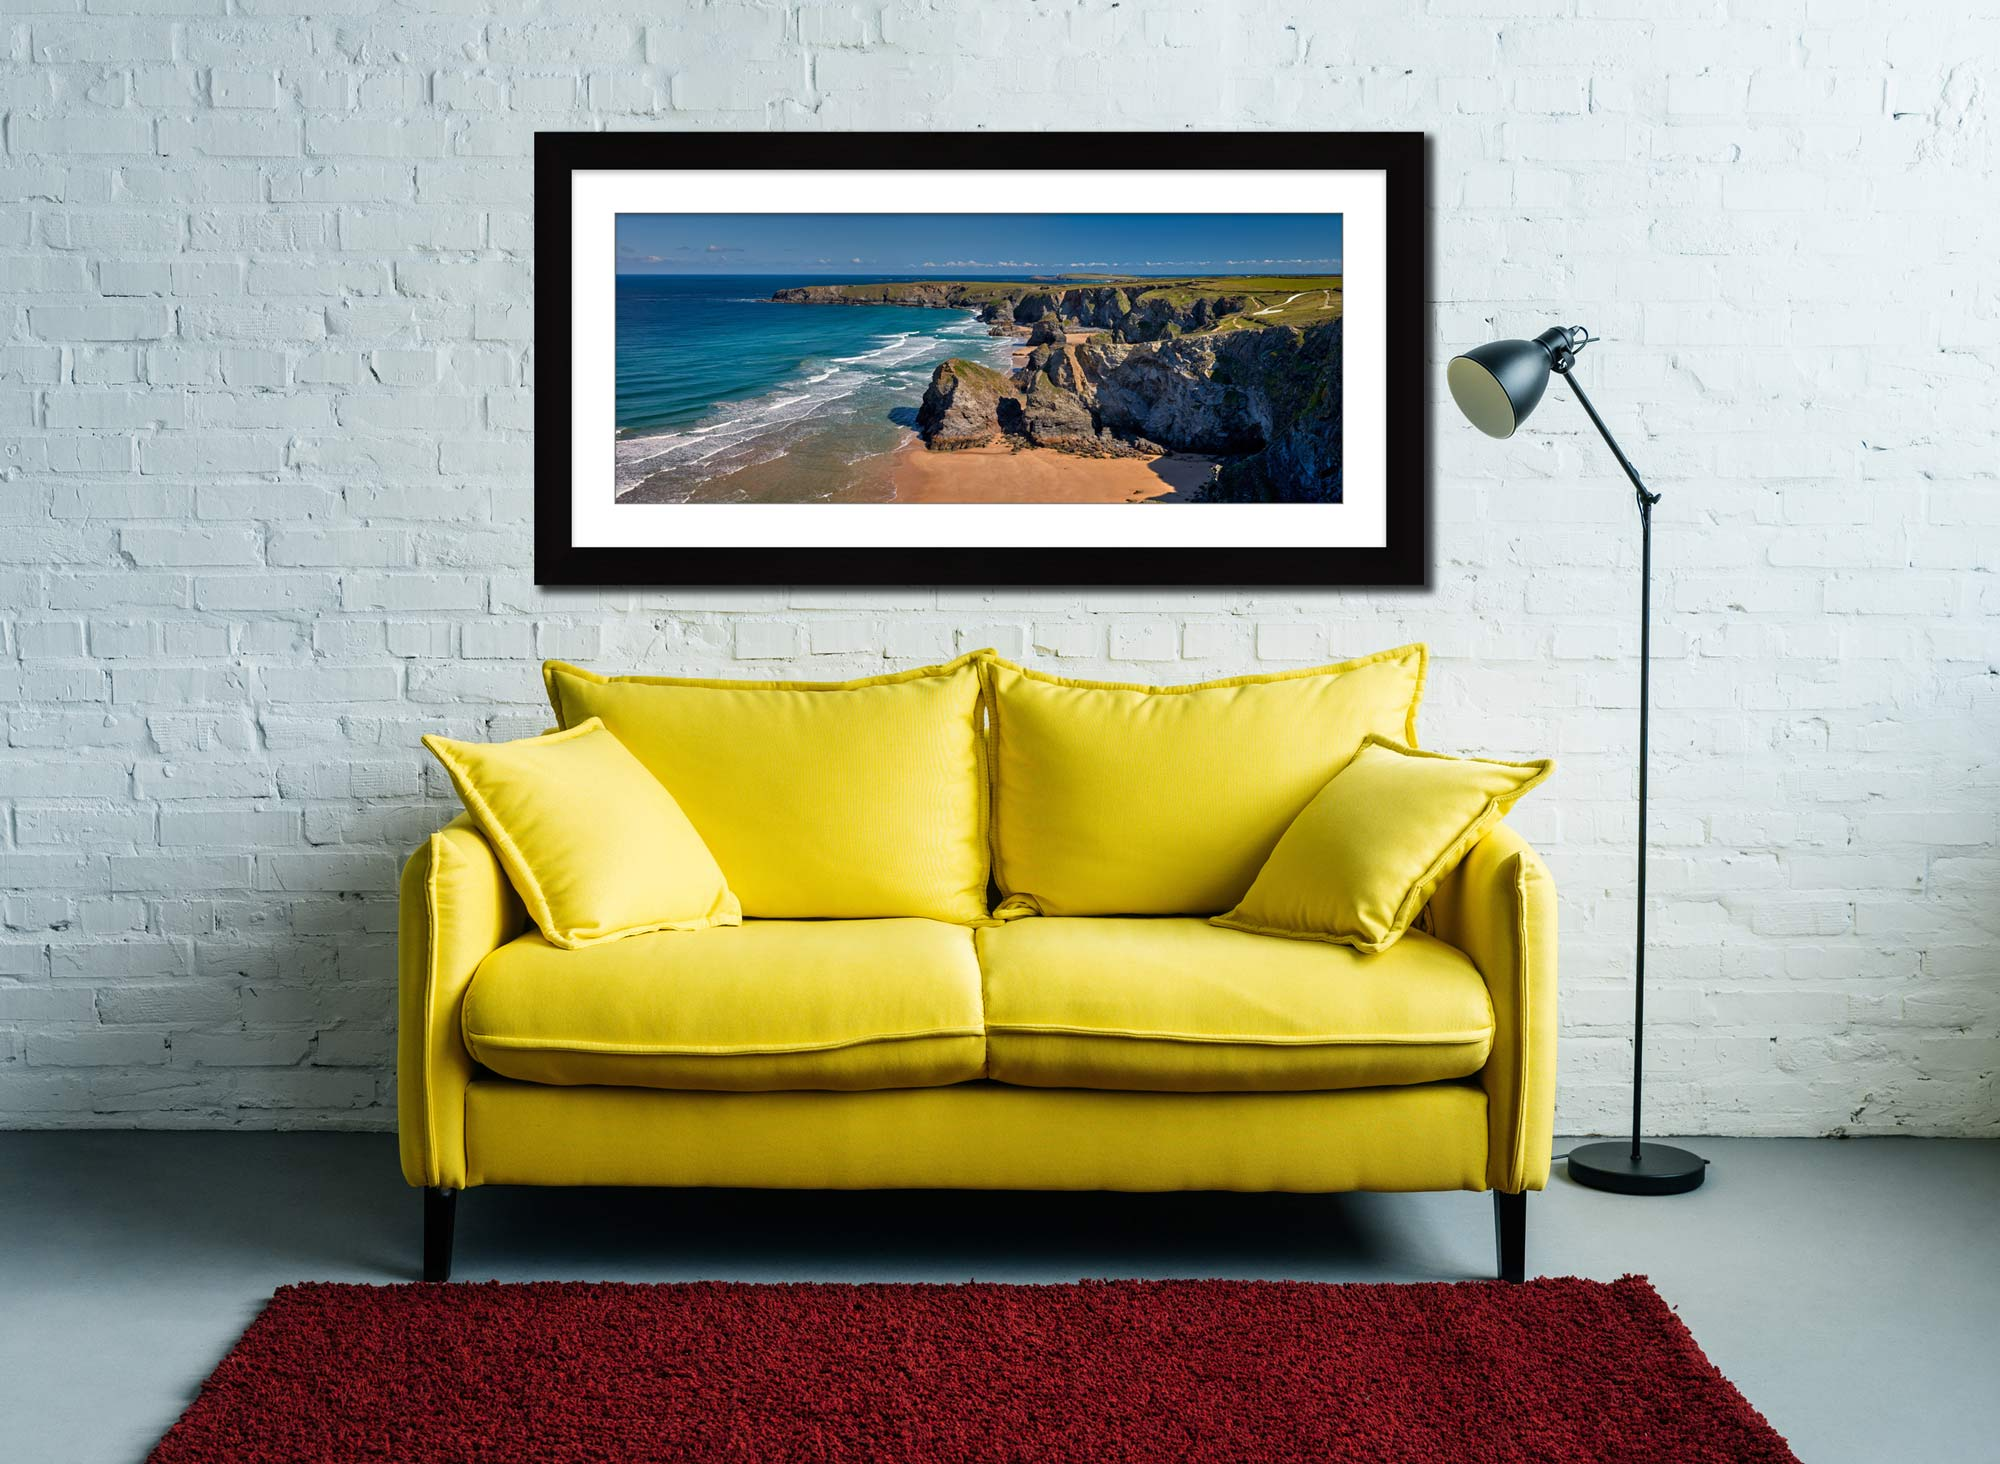 Cliffs and Stacks at Bedruthan - Framed Print with Mount on Wall